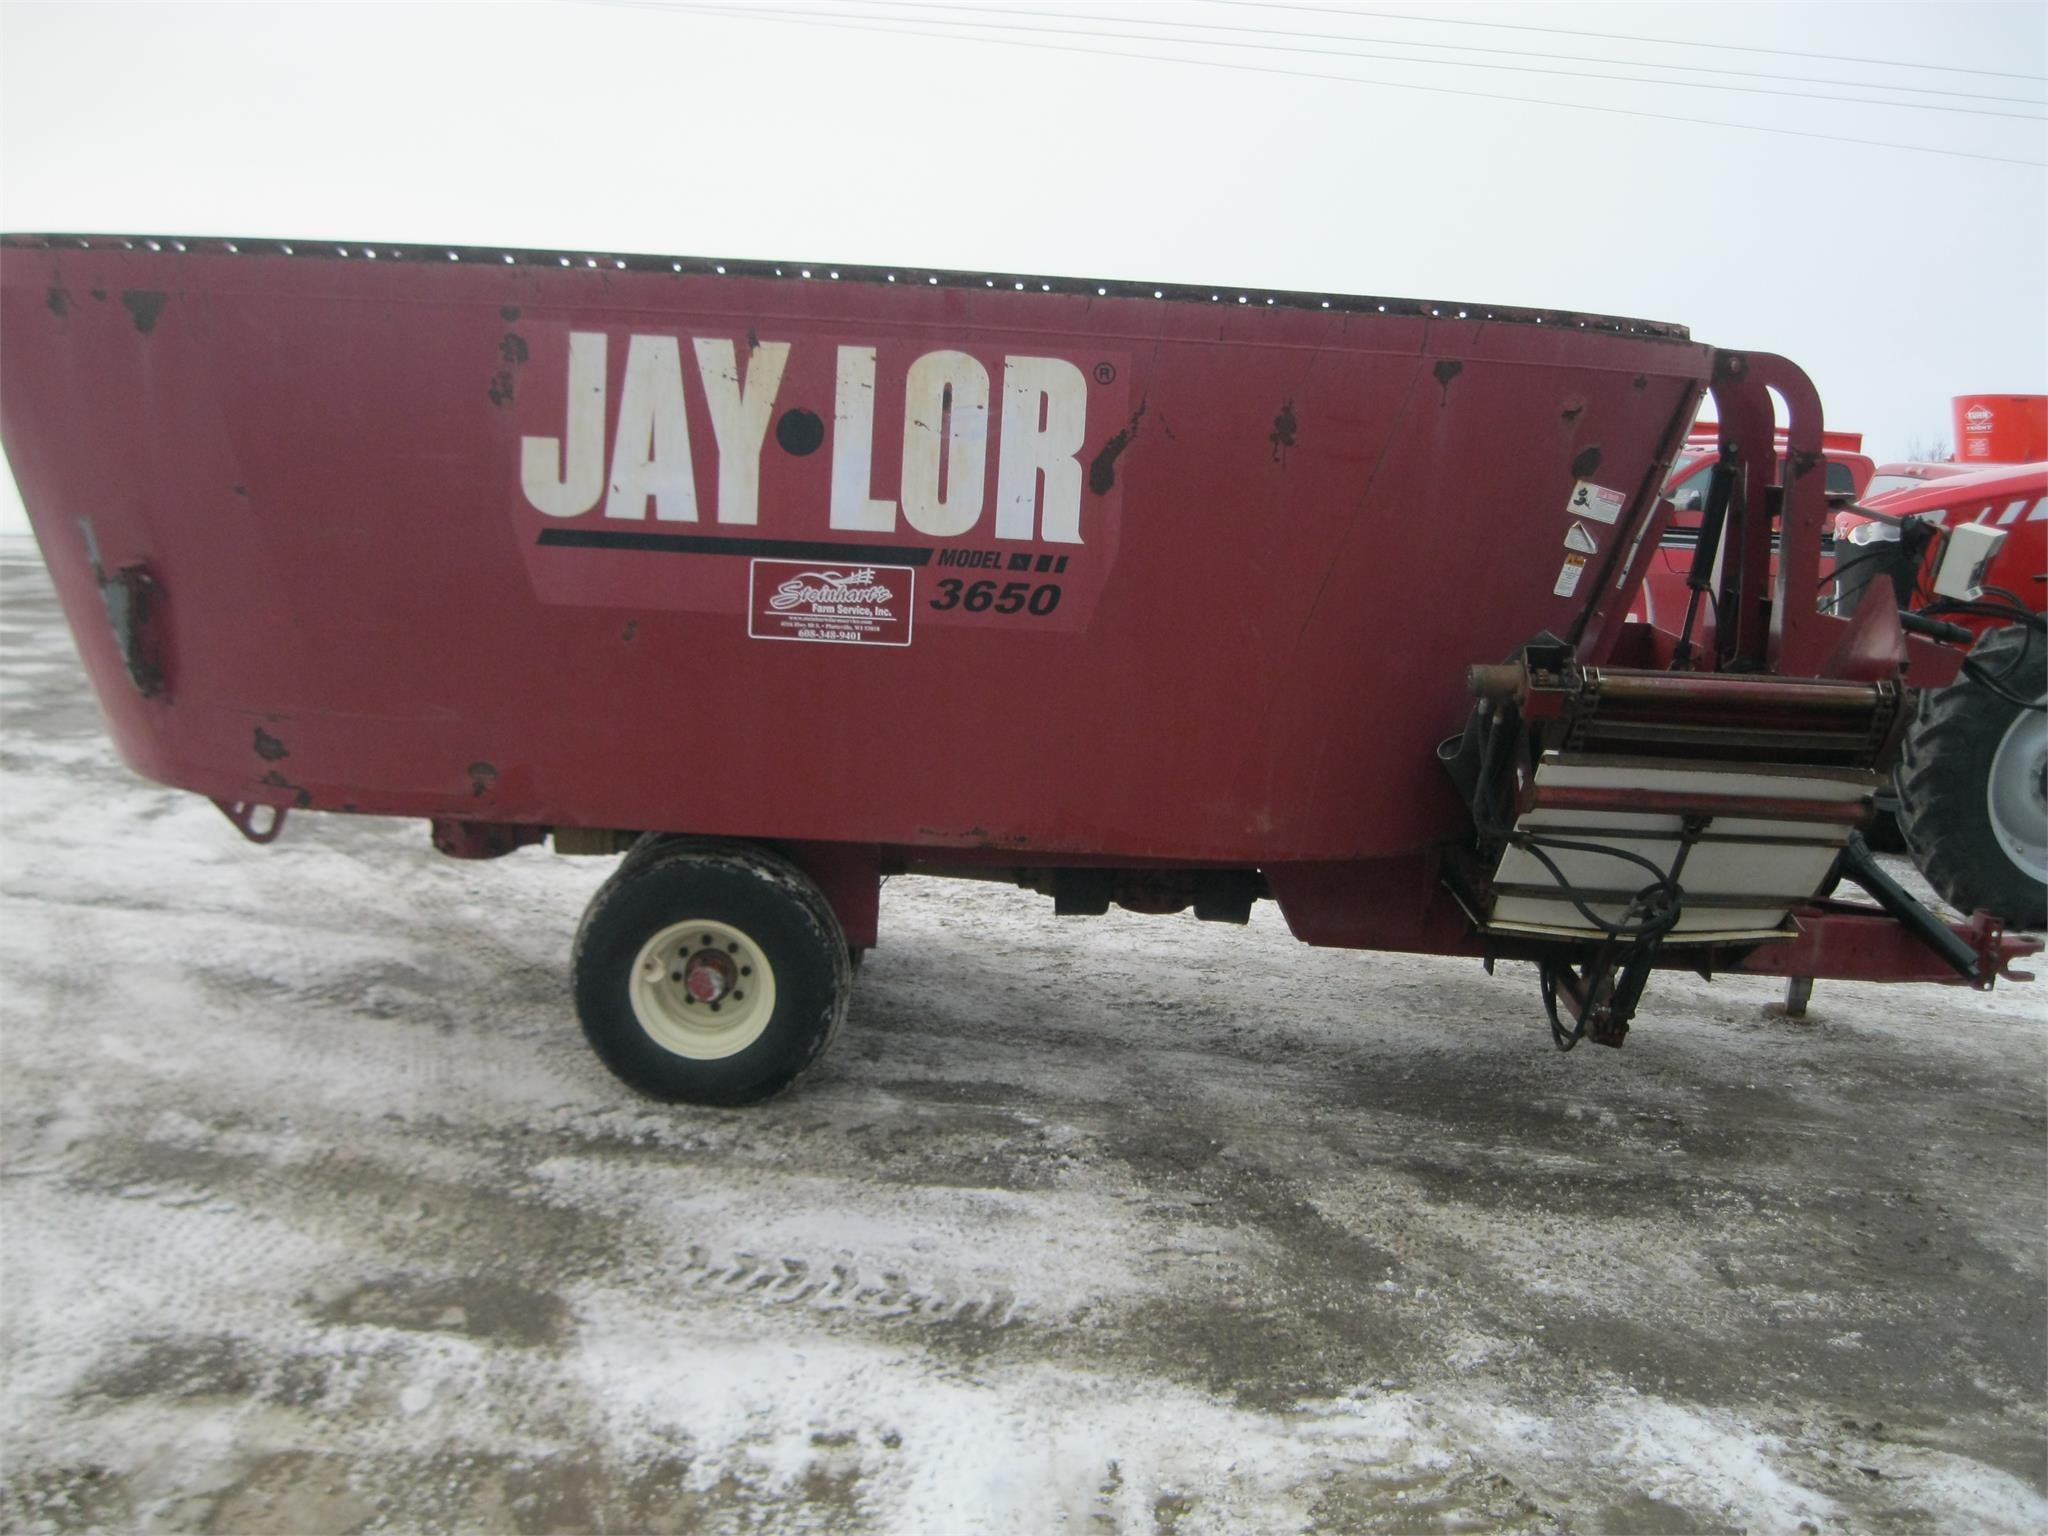 Jay Lor 3650 Grinders and Mixer